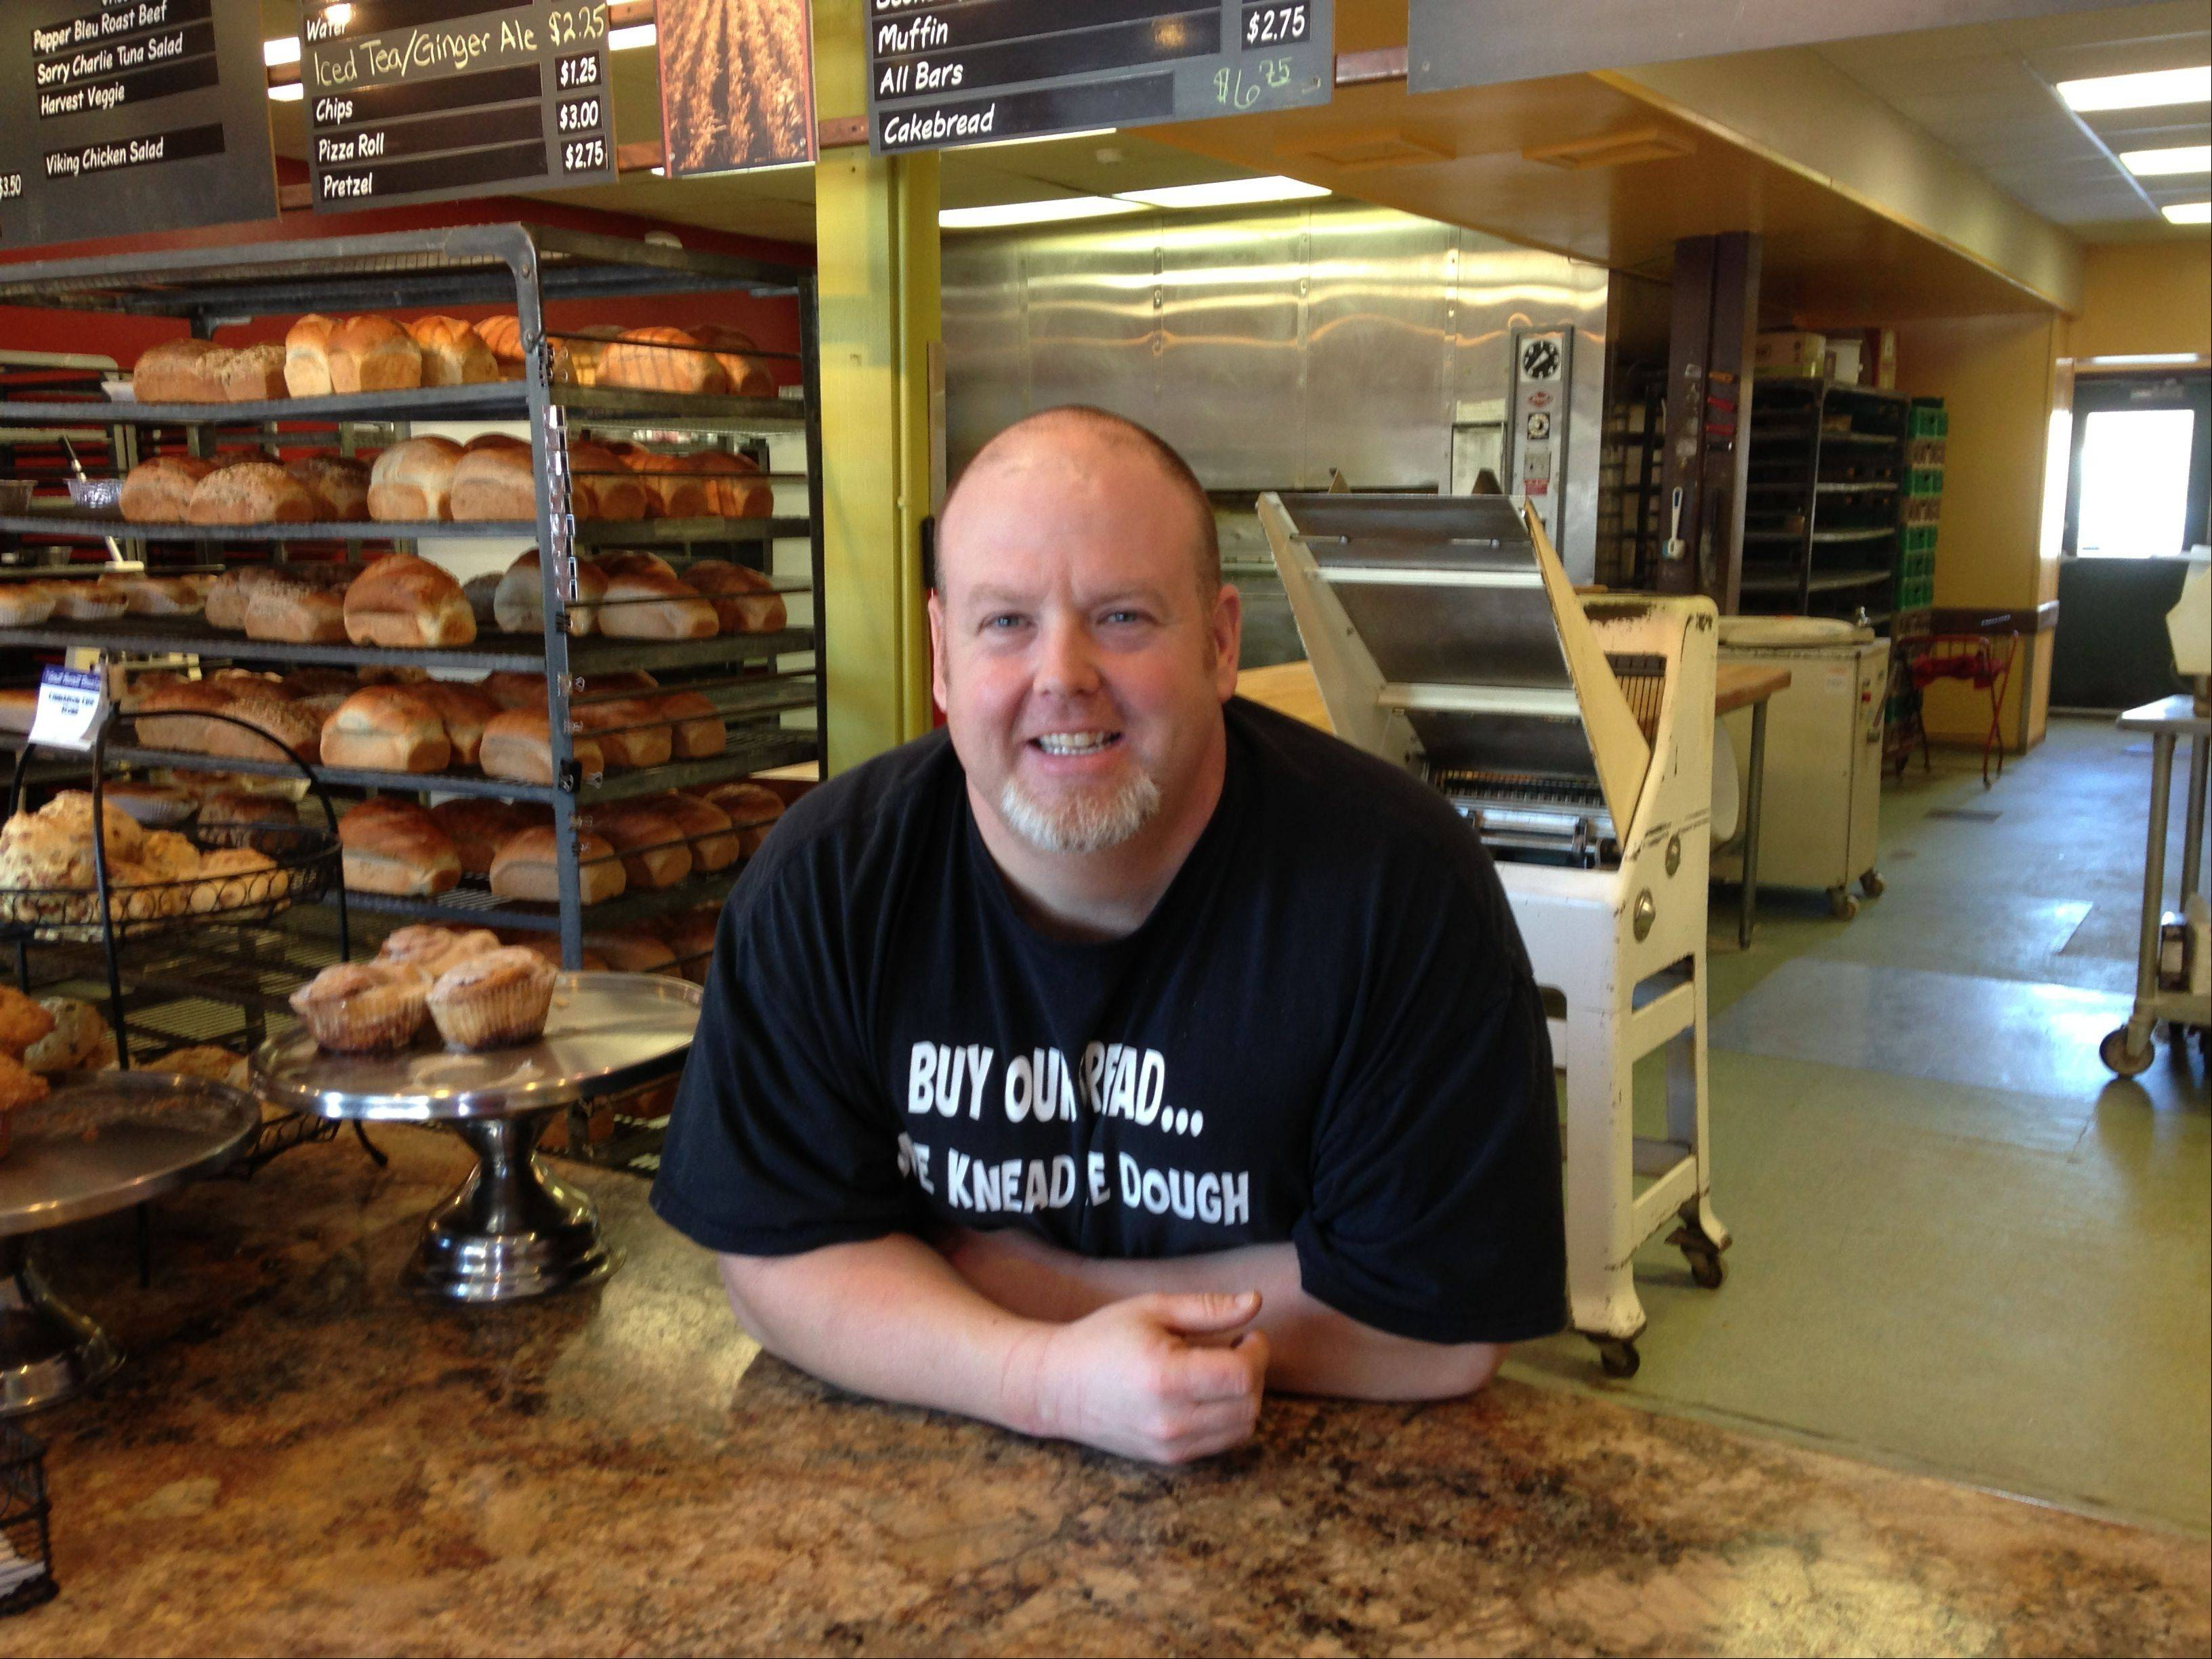 Marty Kane, owner of the Great Harvest Bread Co. store in downtown Geneva, said Tuesday he and his wife, Kim, will close the store Feb. 1. Sales have declined and costs have gone up. The store opened in 1994.